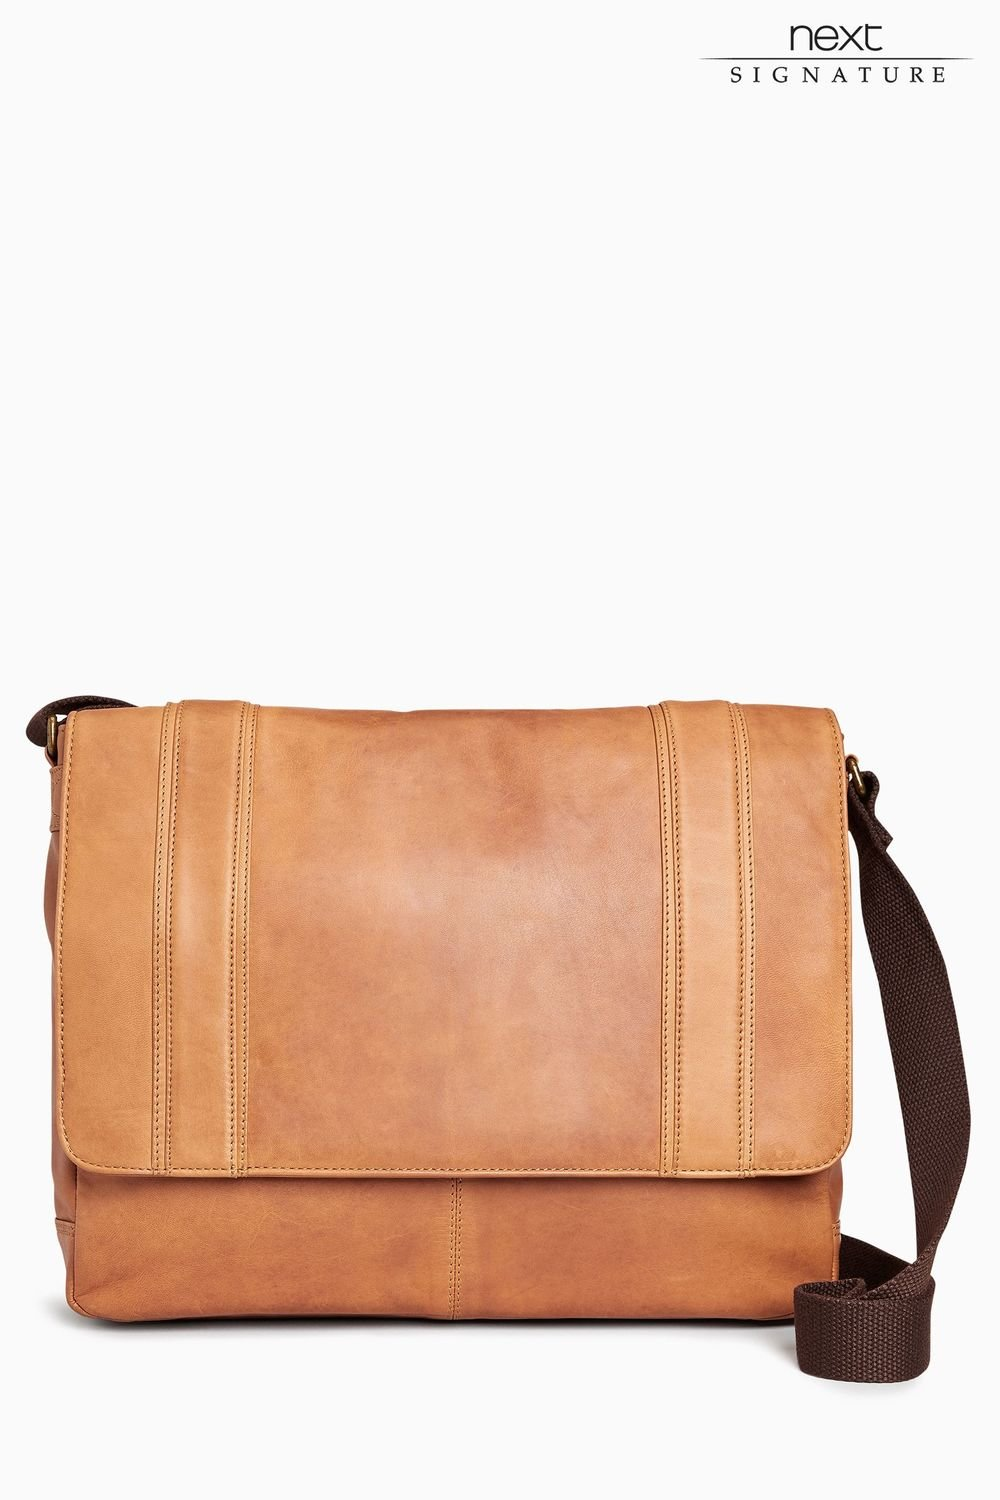 82612e7d0f7df2 Next Signature Leather Panelled Messenger Online